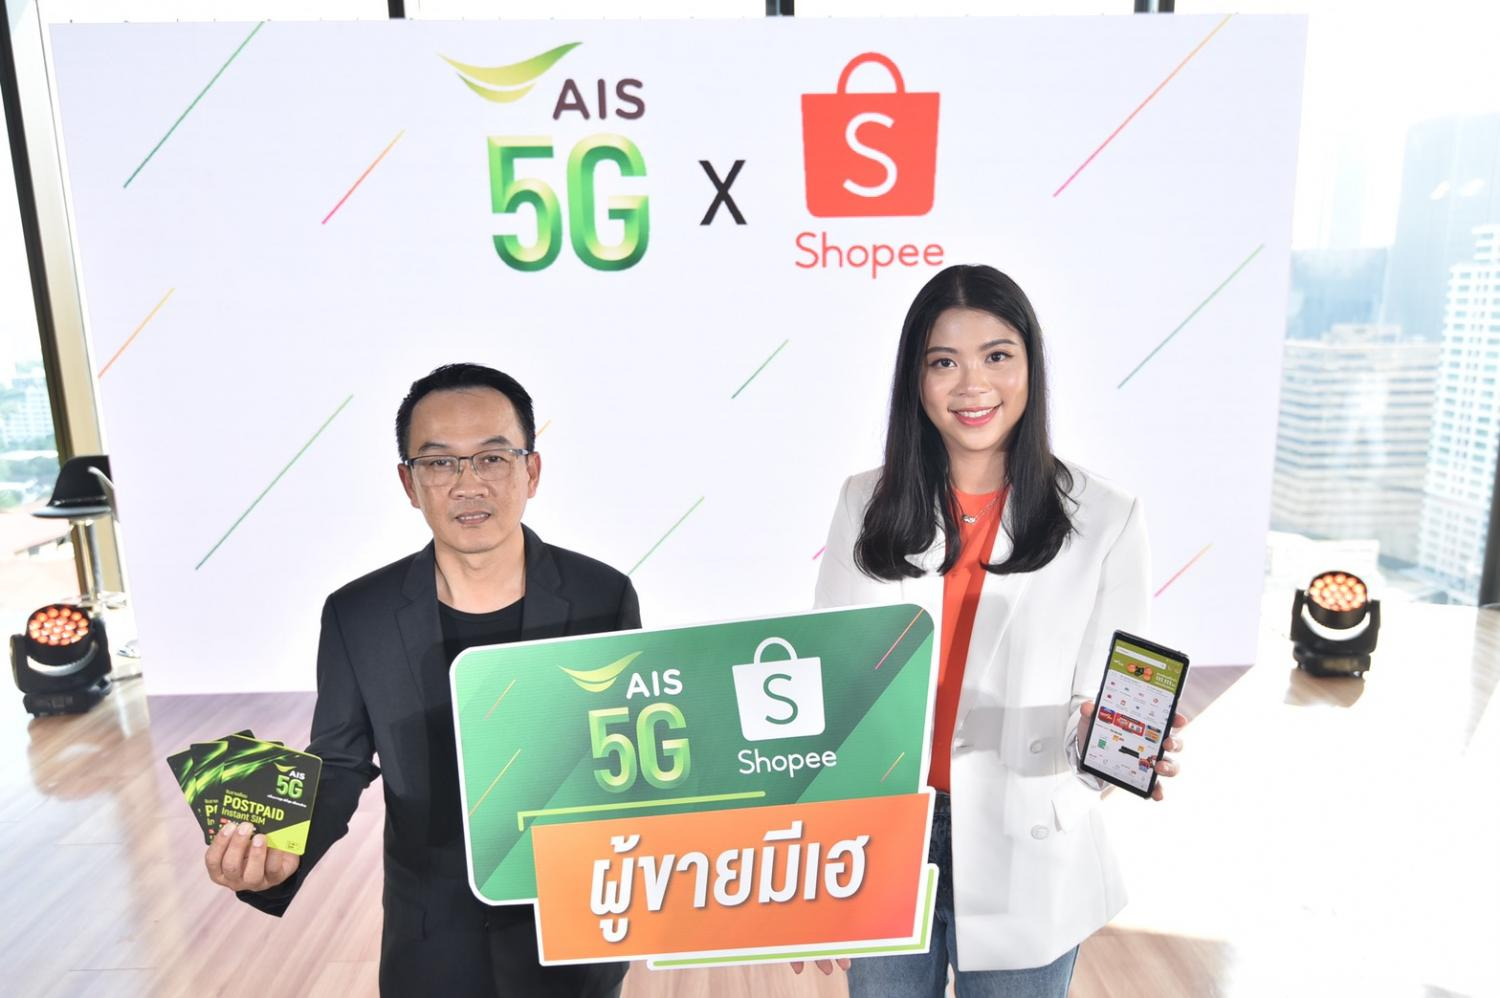 Mr Pongsakorn, left, and Ms Suchaya promote a collaboration between AIS and Shopee to give away customised SIM cards.